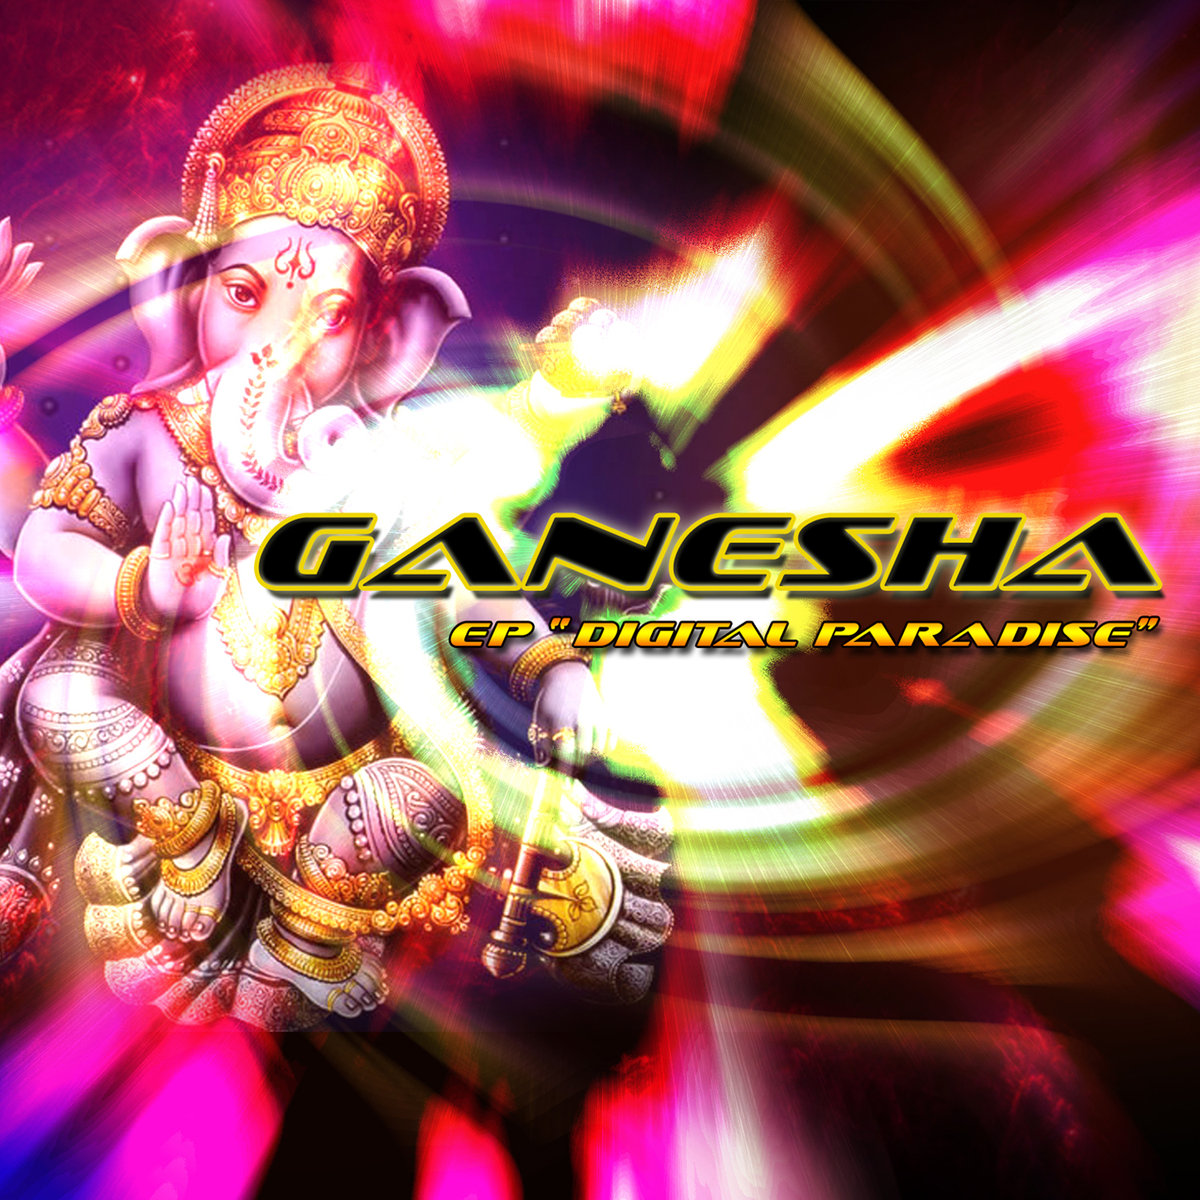 Ganesha - The Fourth Kind (Remix) @ 'Digital Paradise' album (electronic, goa)